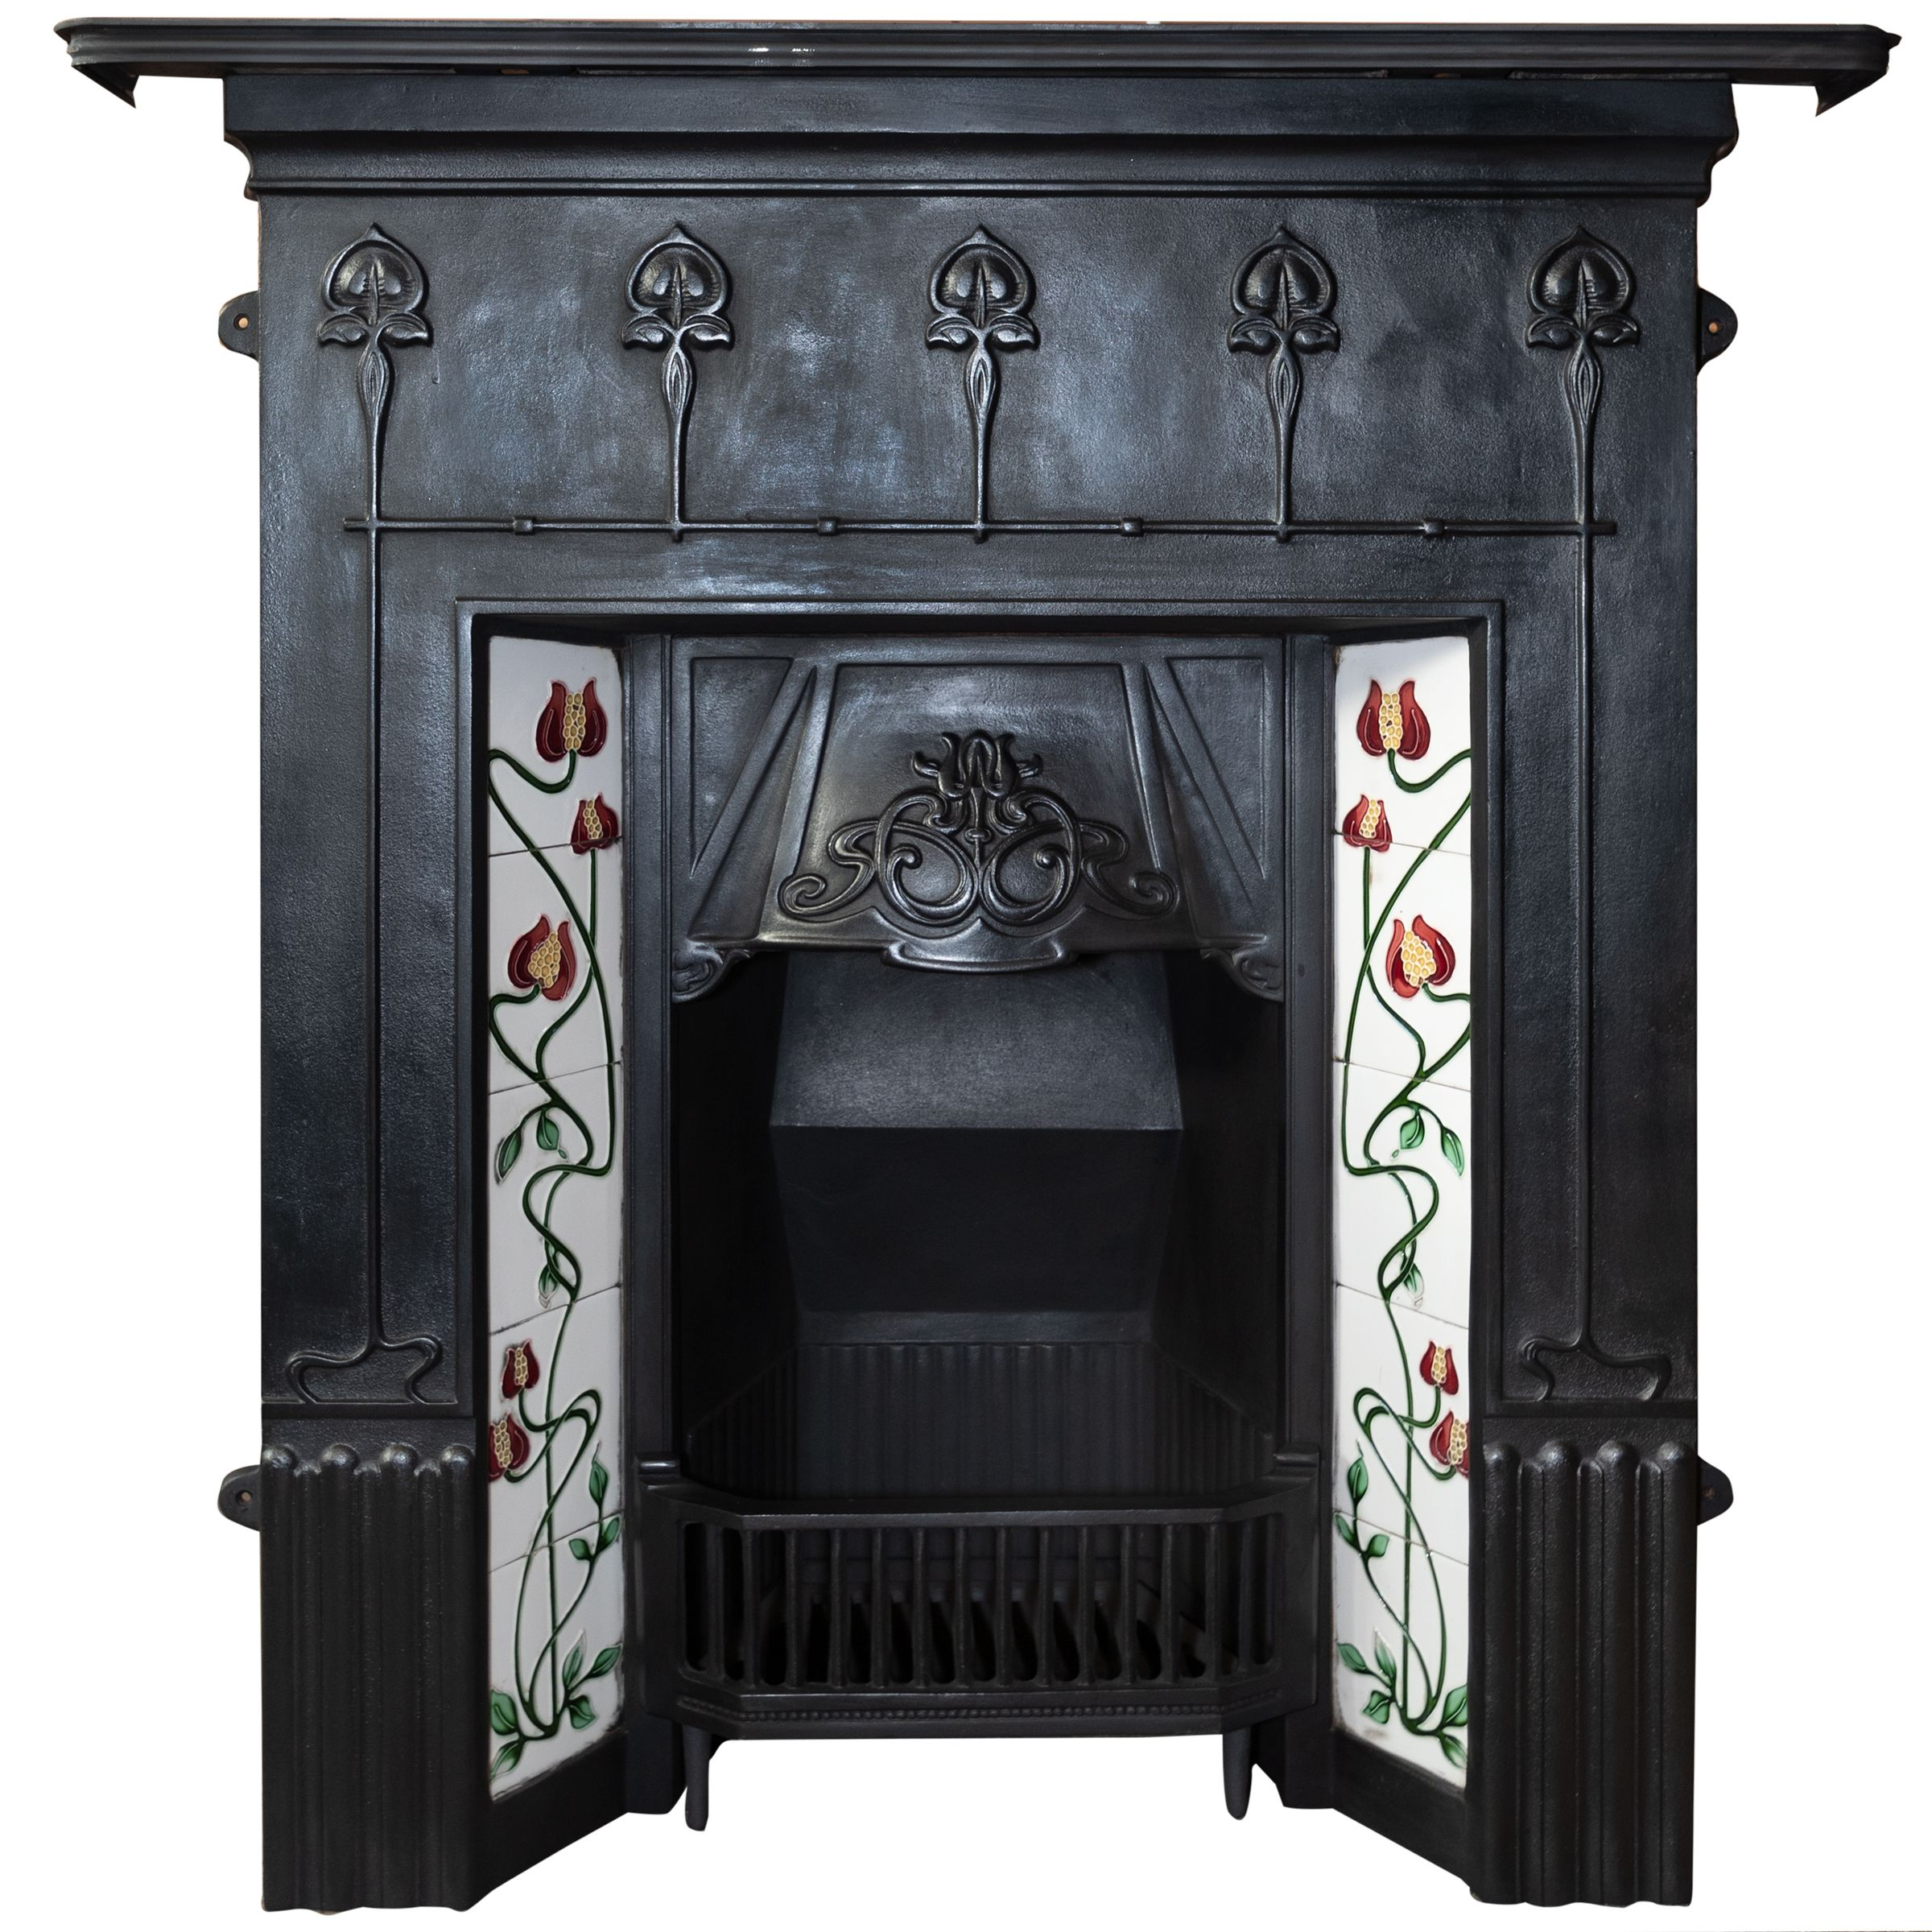 Fireplace Radiator Best Of Huge Selection Of Antique Cast Iron Fireplaces Fully